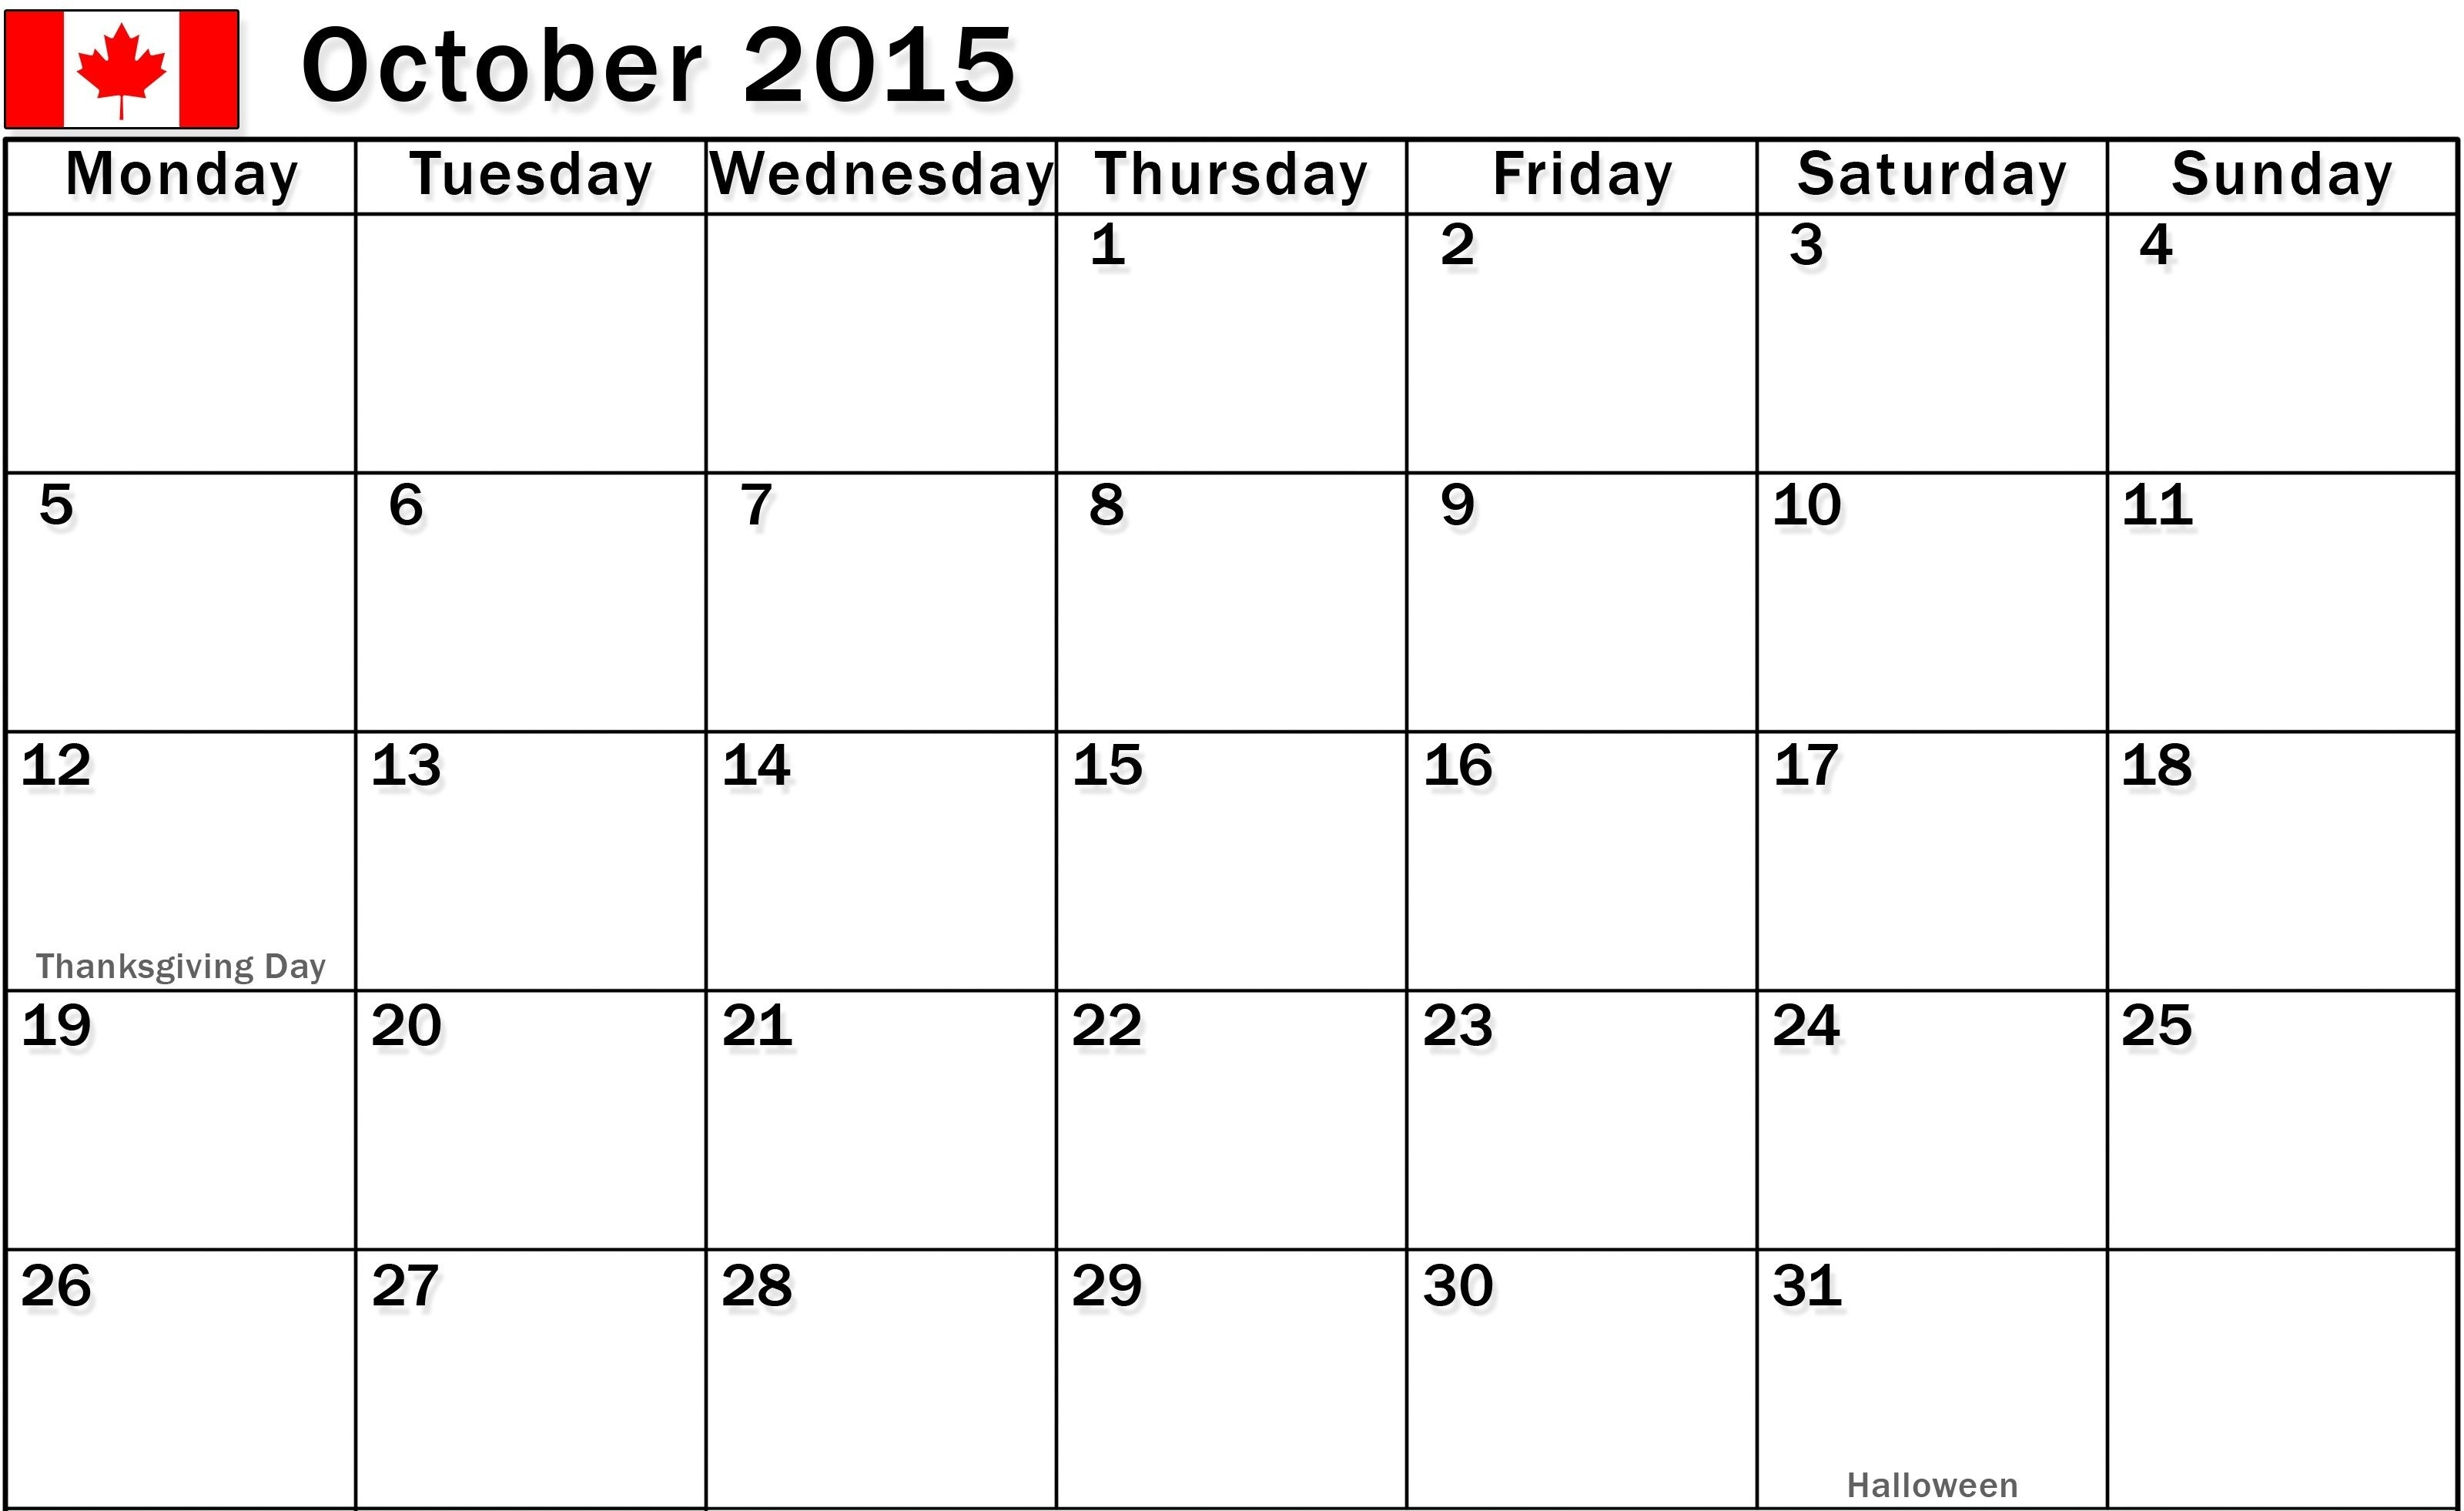 October 2015 Calendar Fillable, Printable Pdf Pictures, Images throughout Fillable Monthly Calendar December 2015